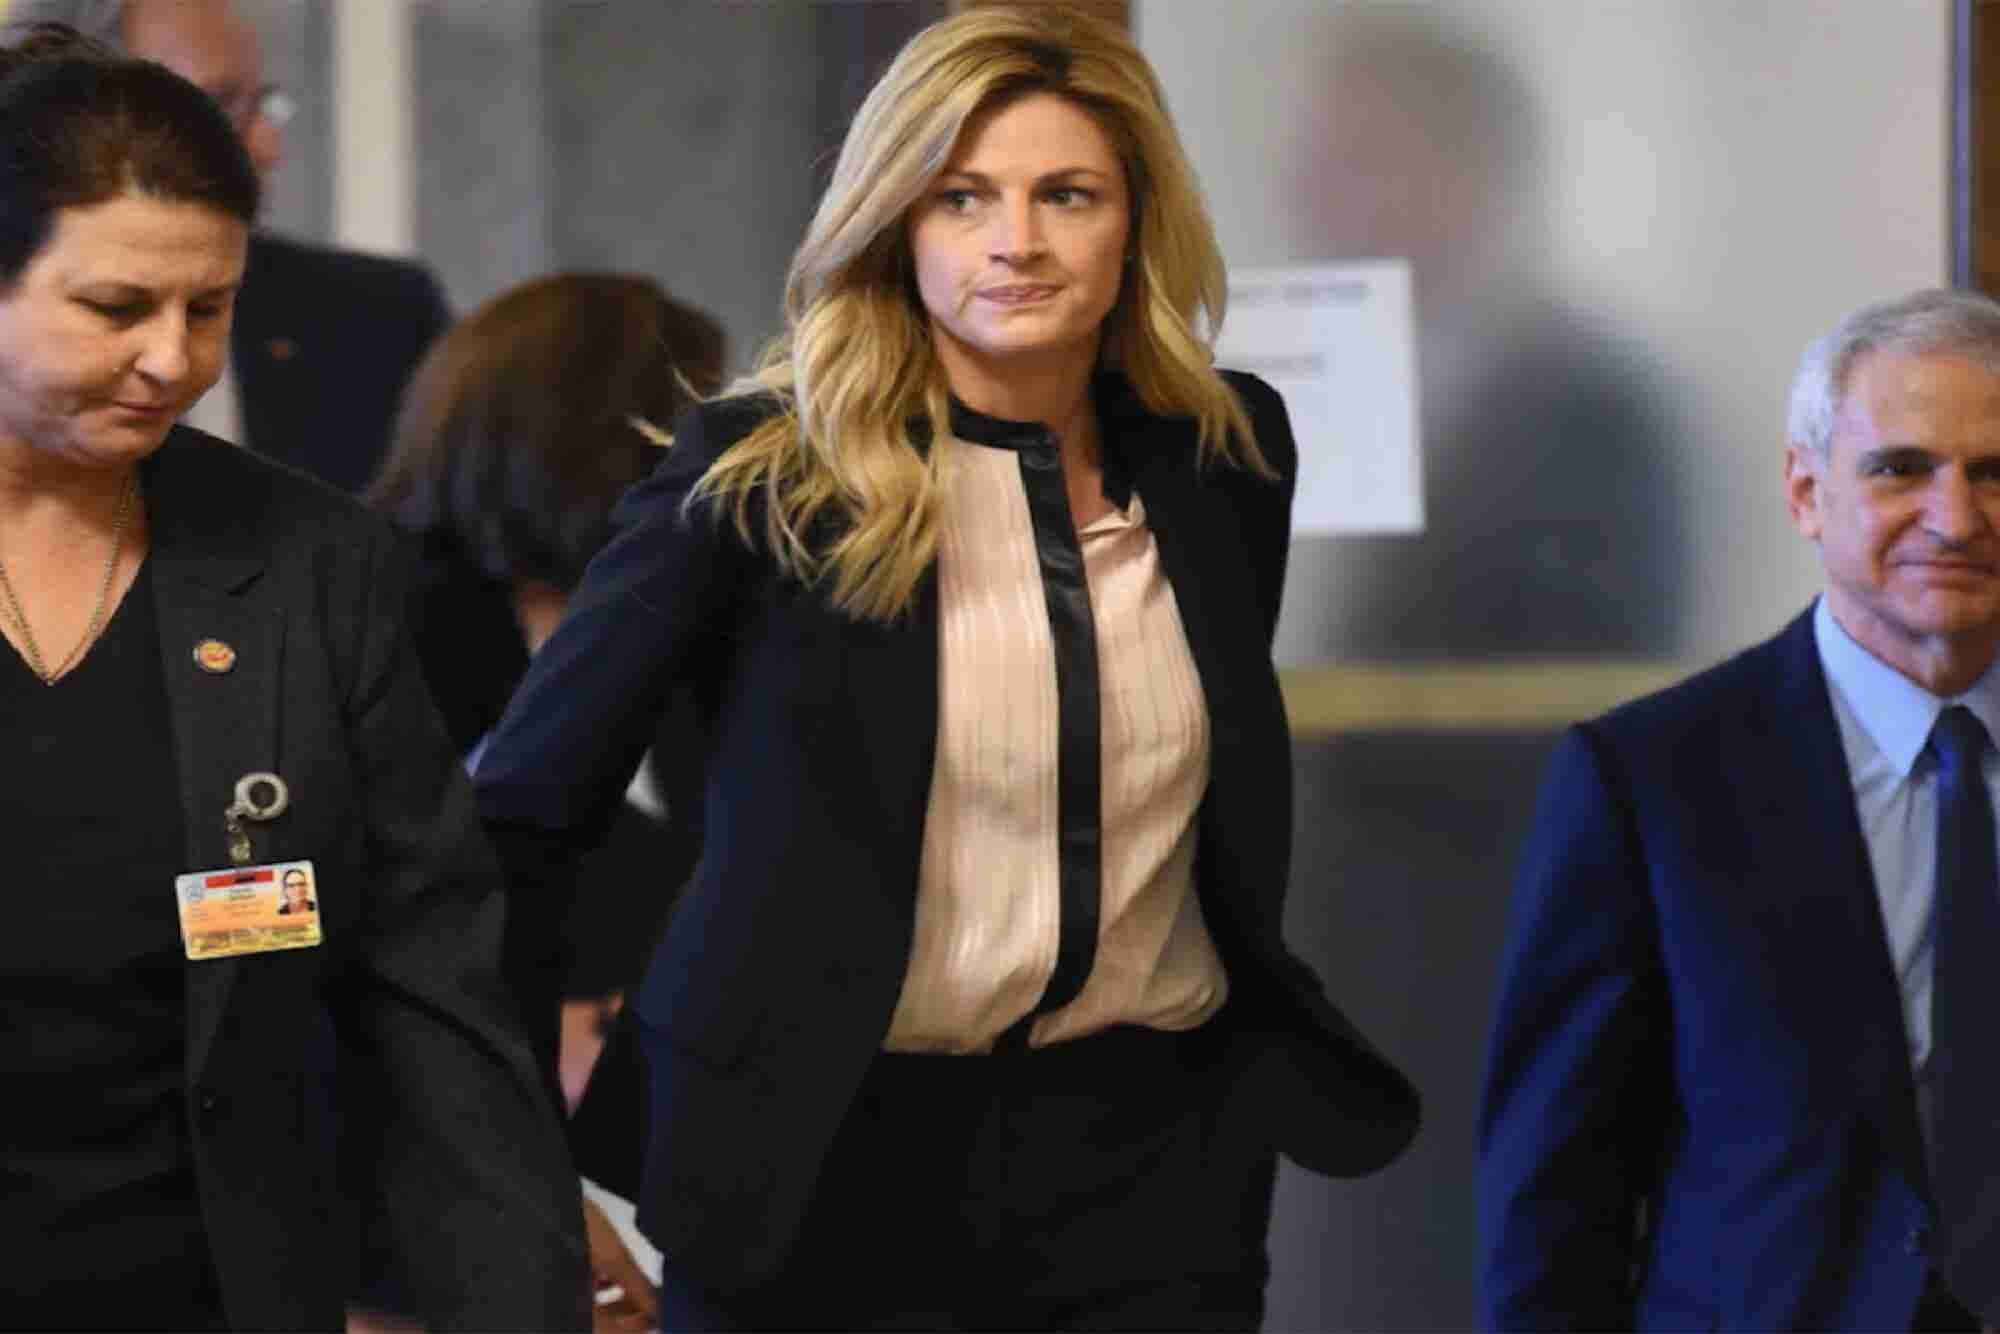 Jury Awards Erin Andrews $55 Million in Nude Video Civil Suit